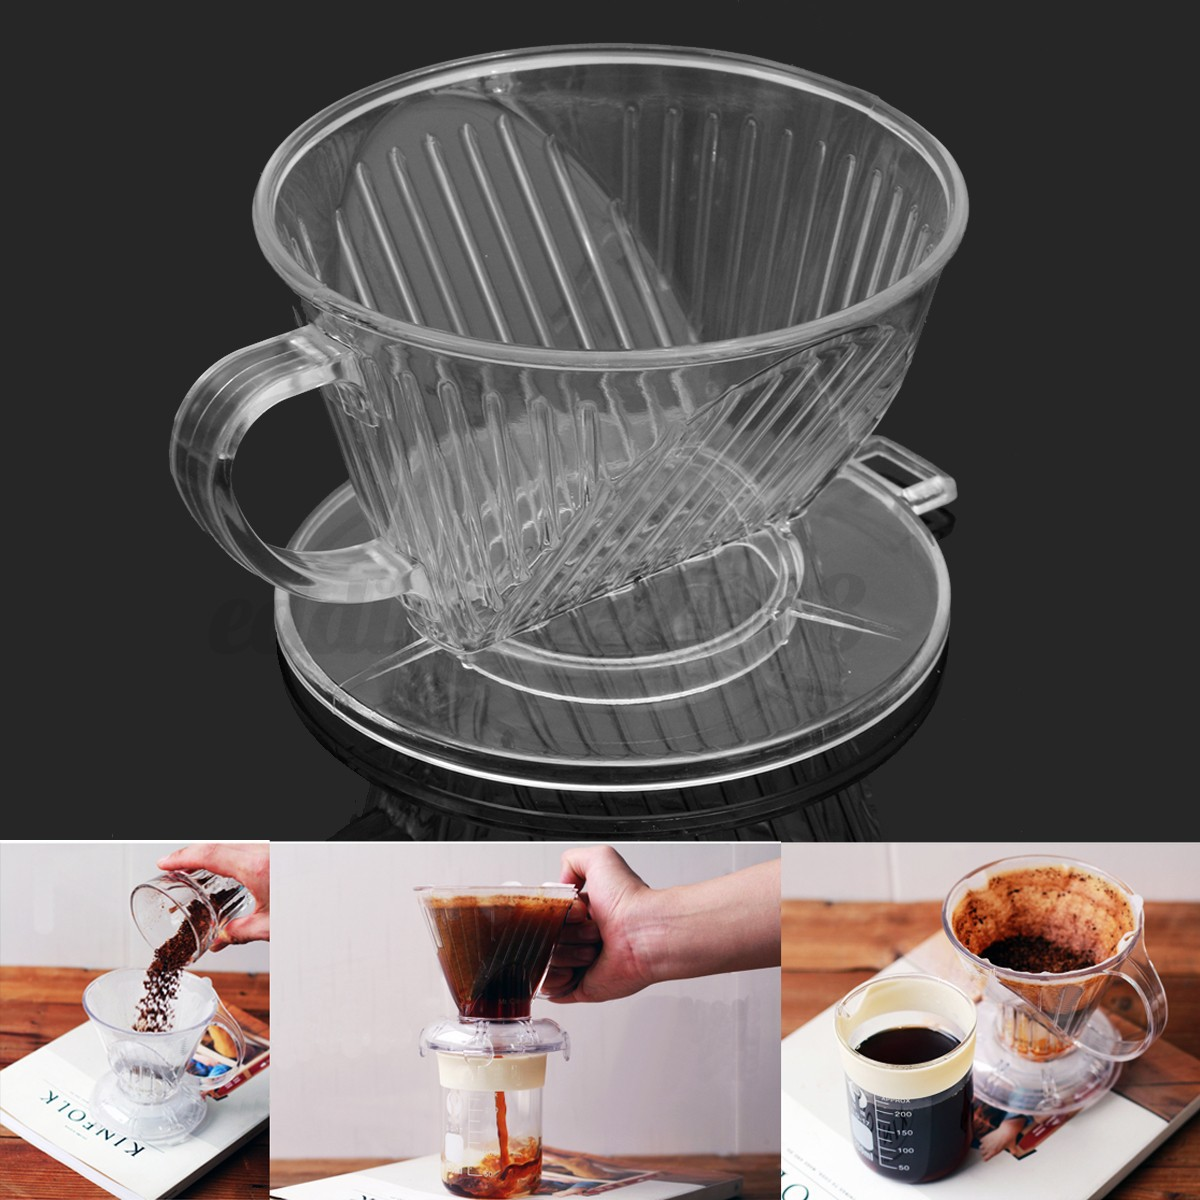 A Coffee Maker Has A Filter Holder : Clear Coffee Filter Cup Cone Drip Dripper Maker Brewer Holder Plastic Reusable eBay